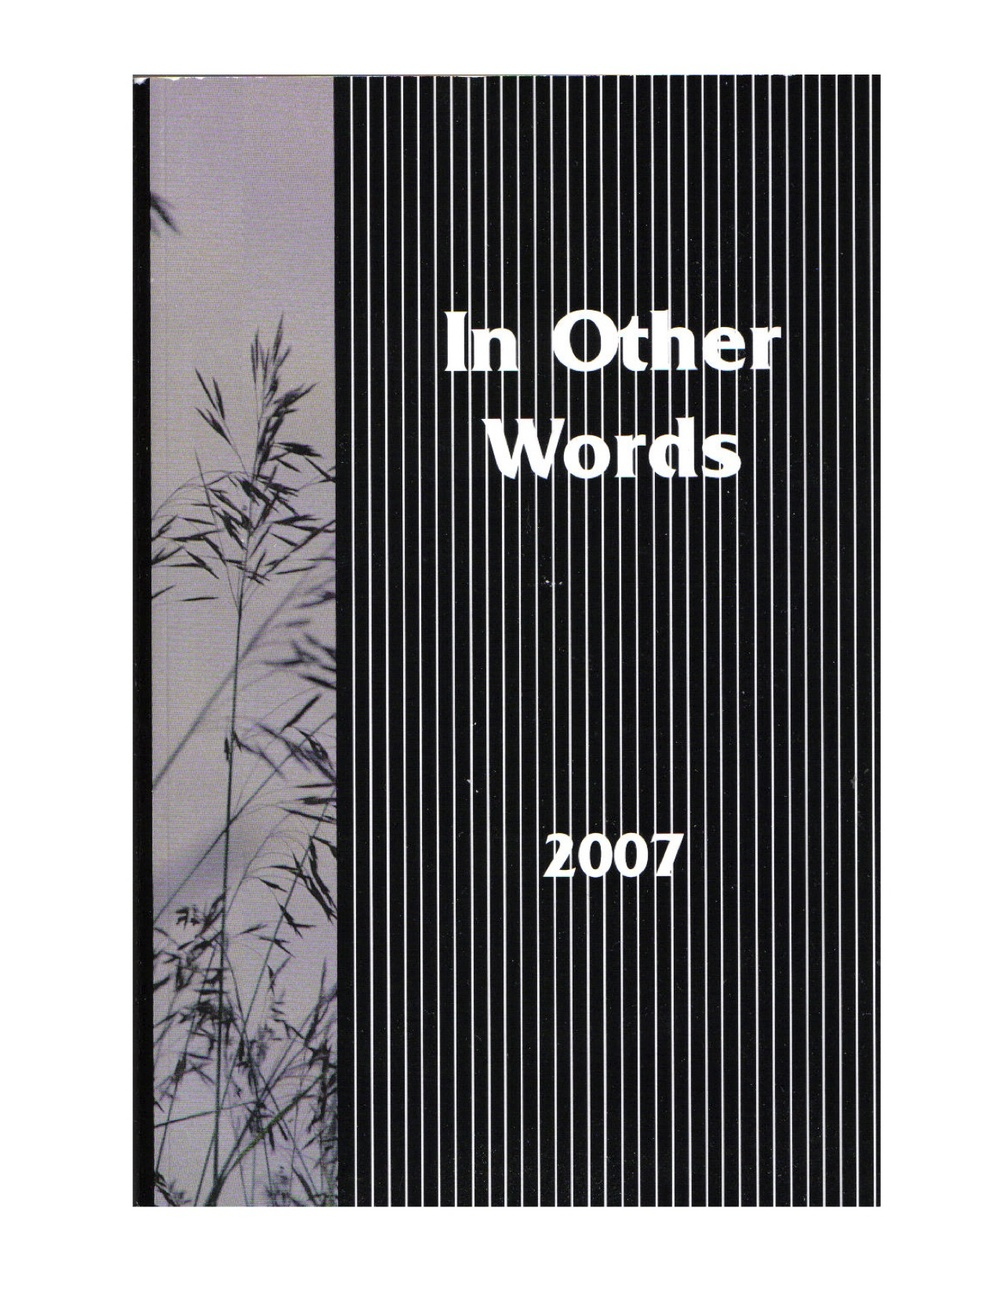 """MY POEM """"DOROTHY AND PAUL"""" WAS FEATURED IN THE BOOK IN OTHER WORDS IN 2007"""